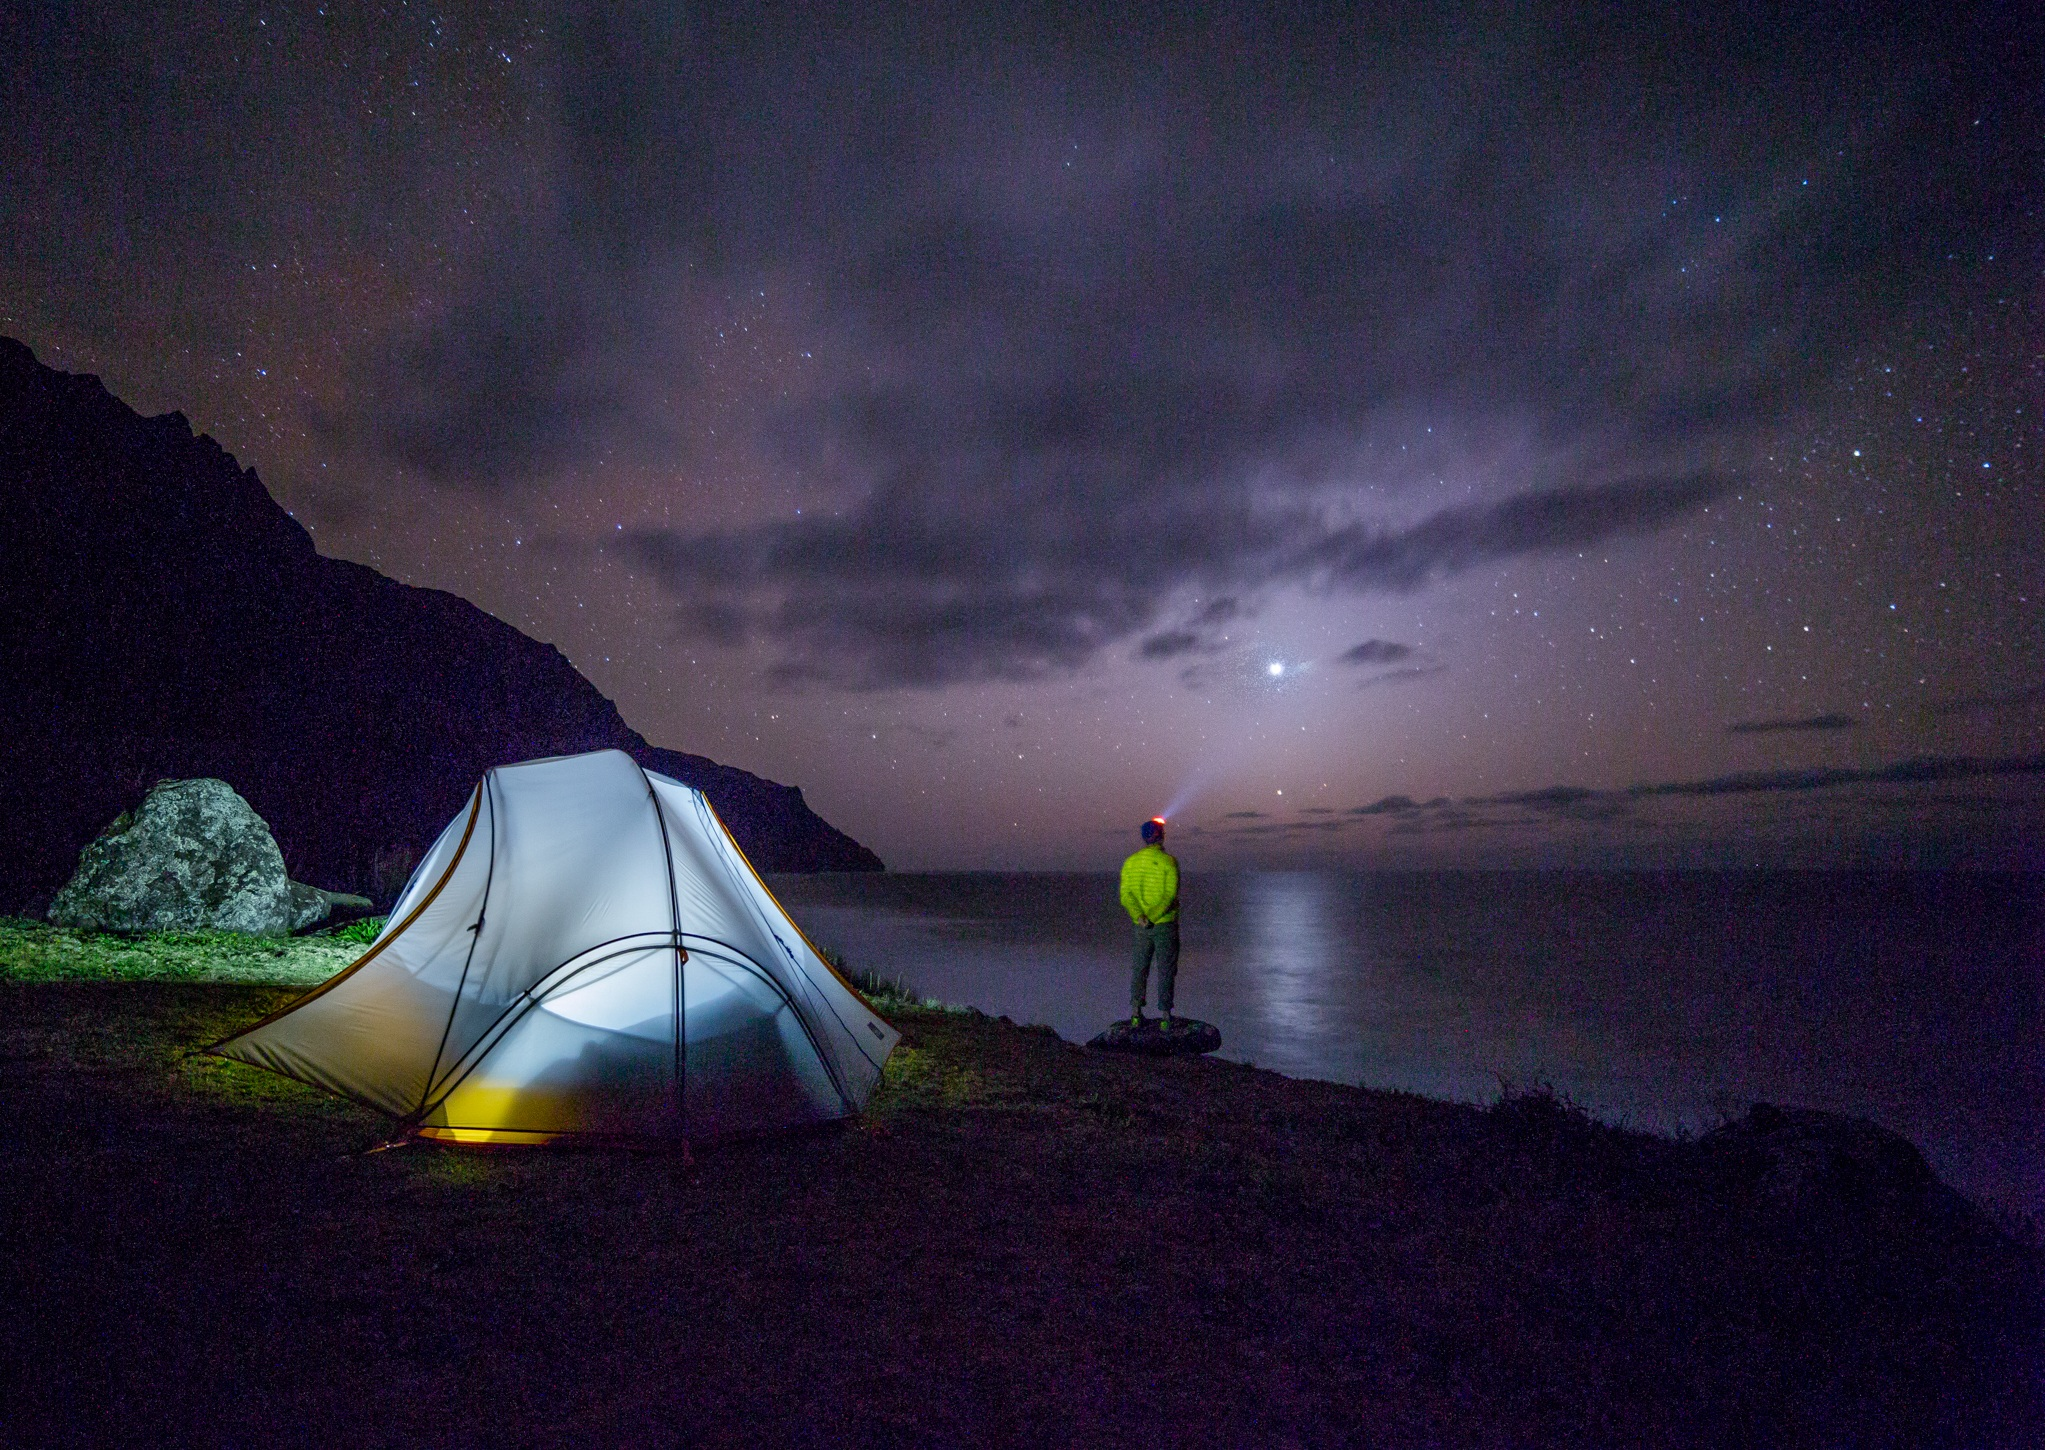 camping site at night